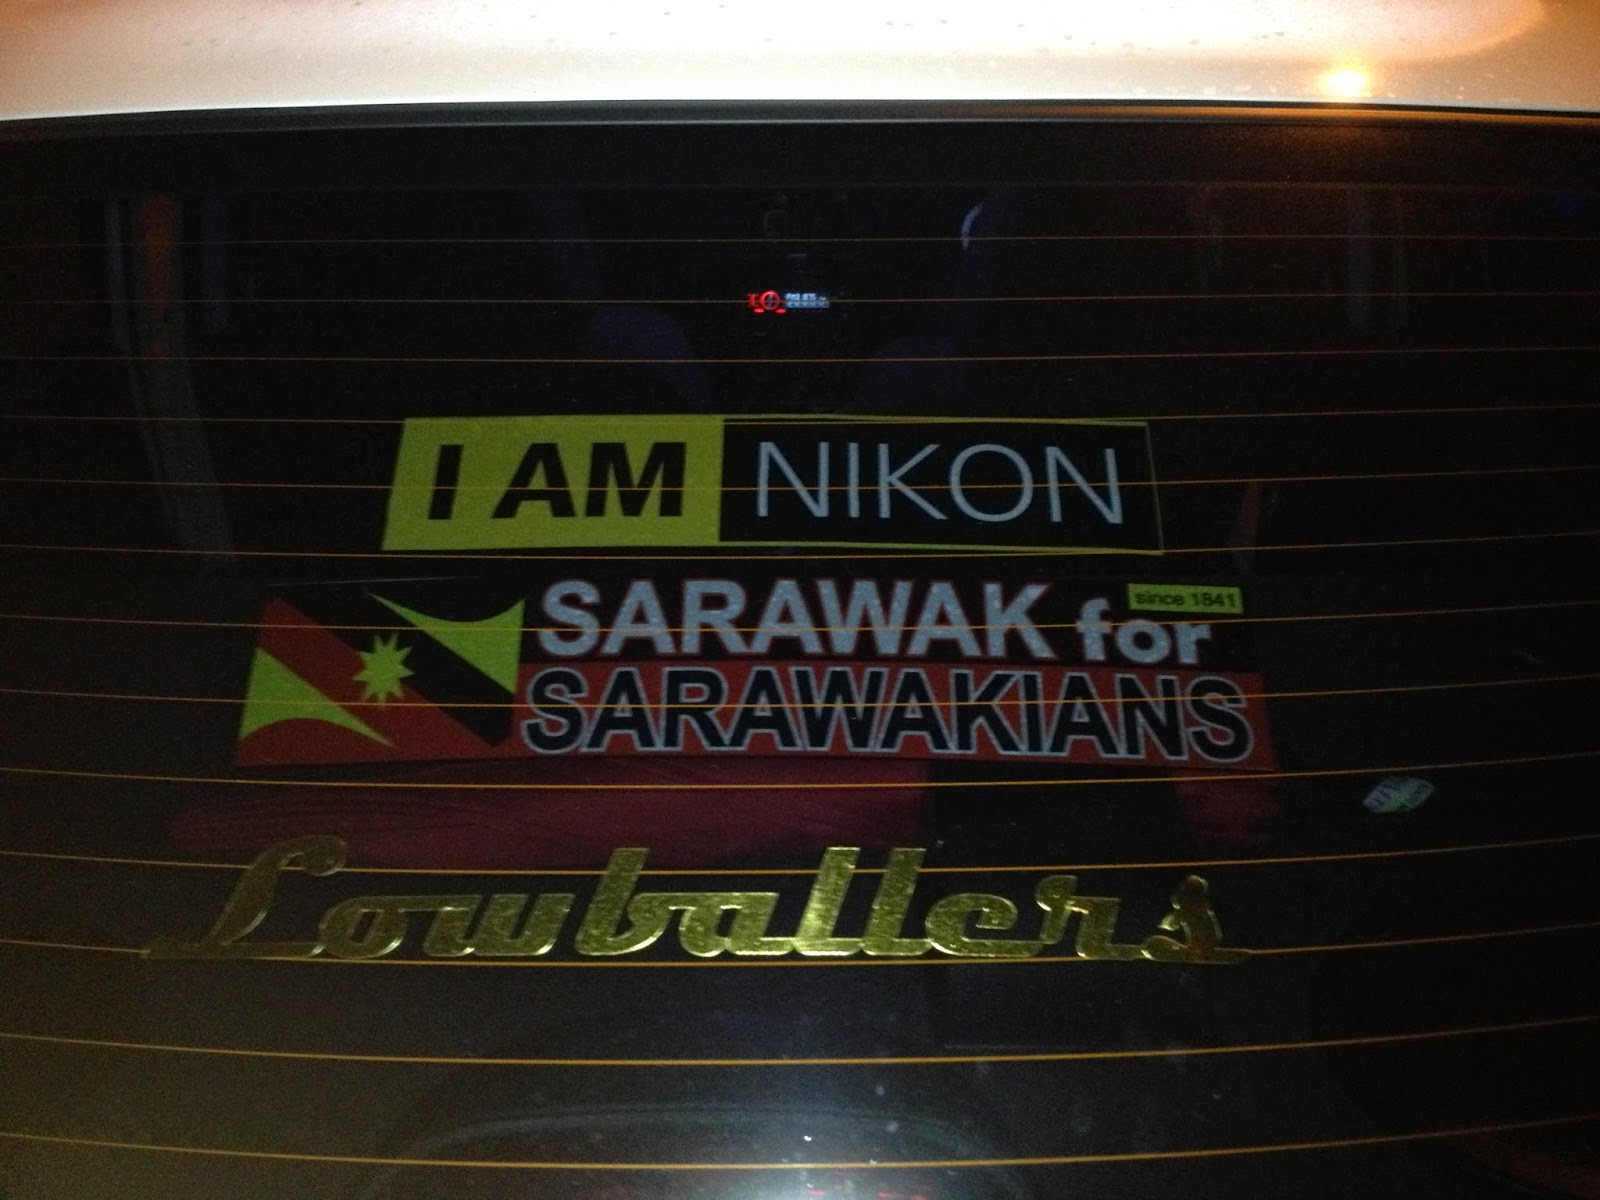 Car sticker design kuching - We Support Our Country Sarawak